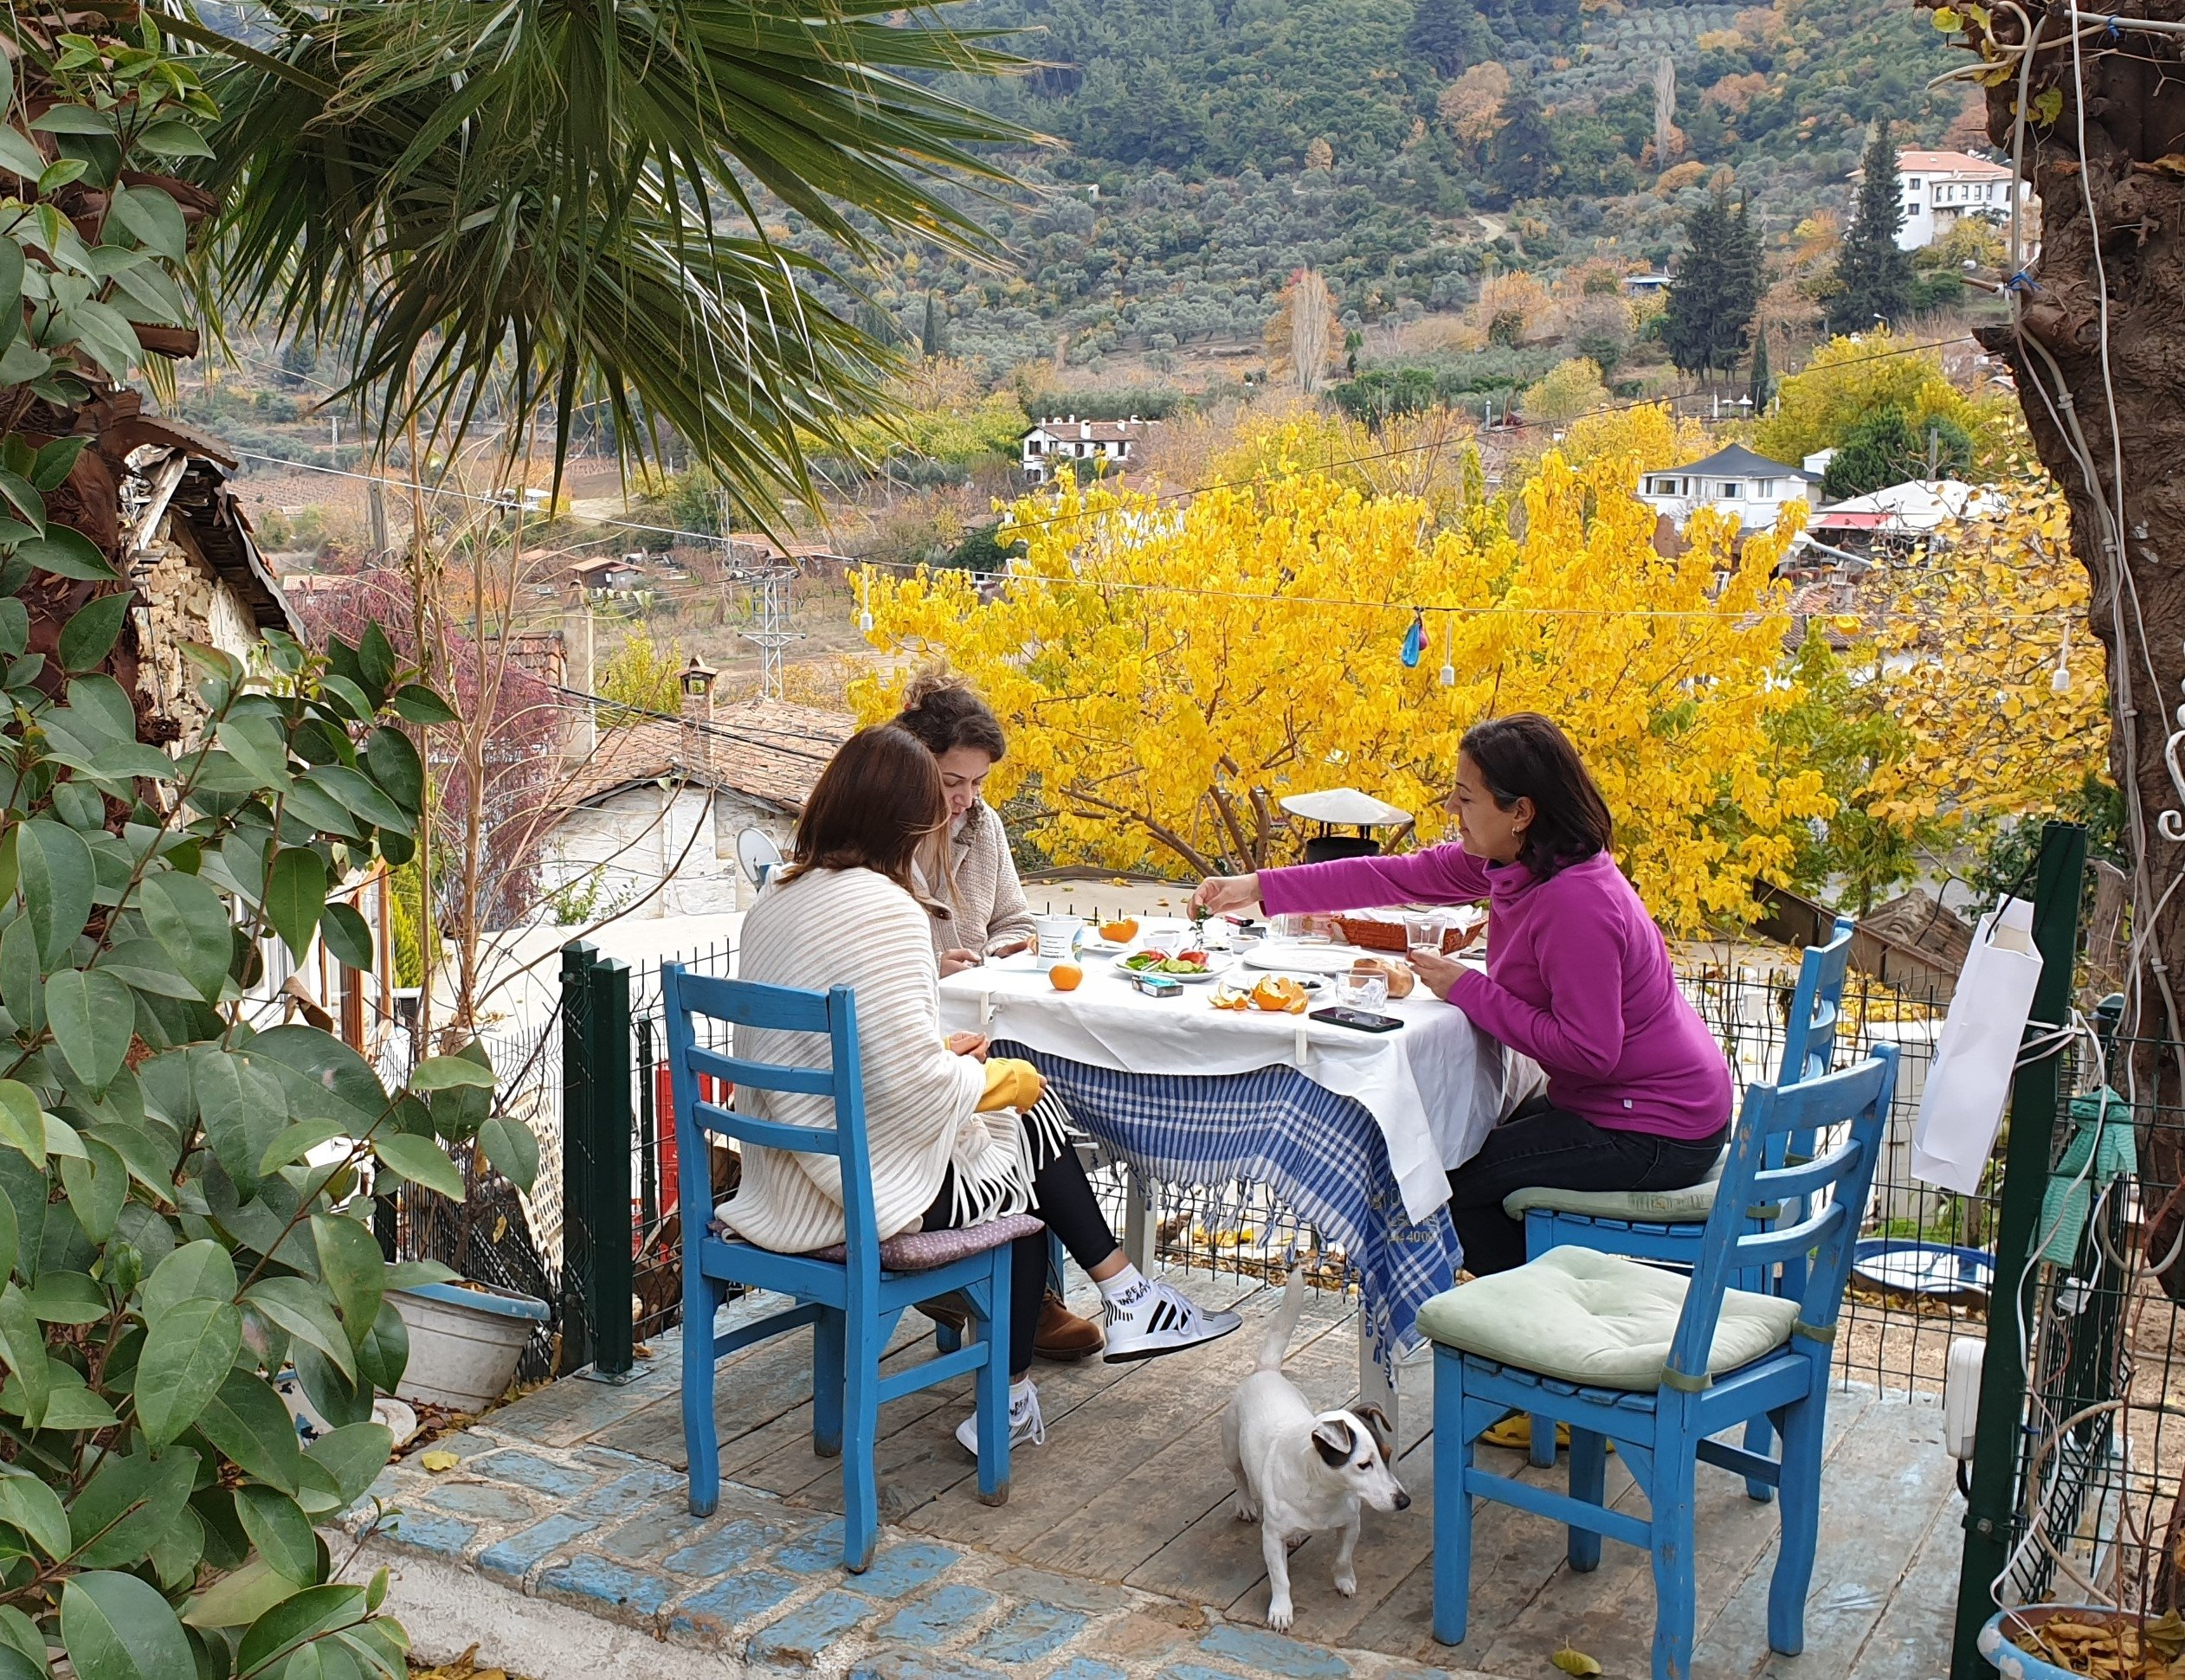 Once a 'doomsday' shelter, Şirince village in western Turkey now a pandemic getaway